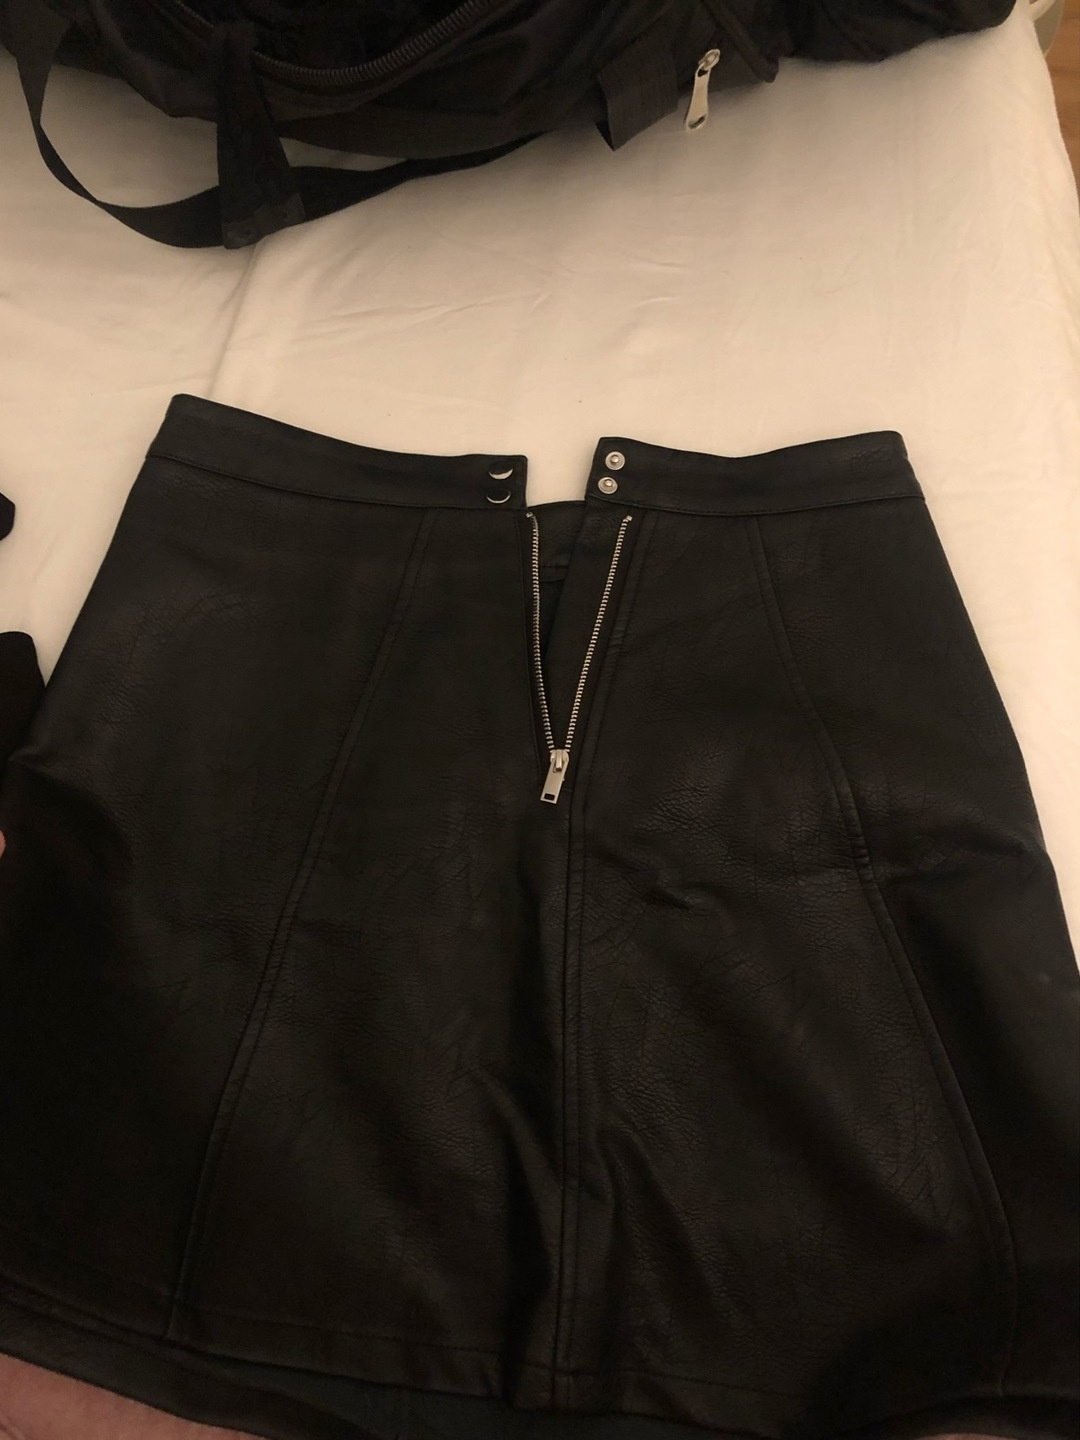 Women's skirts - ZARA photo 2